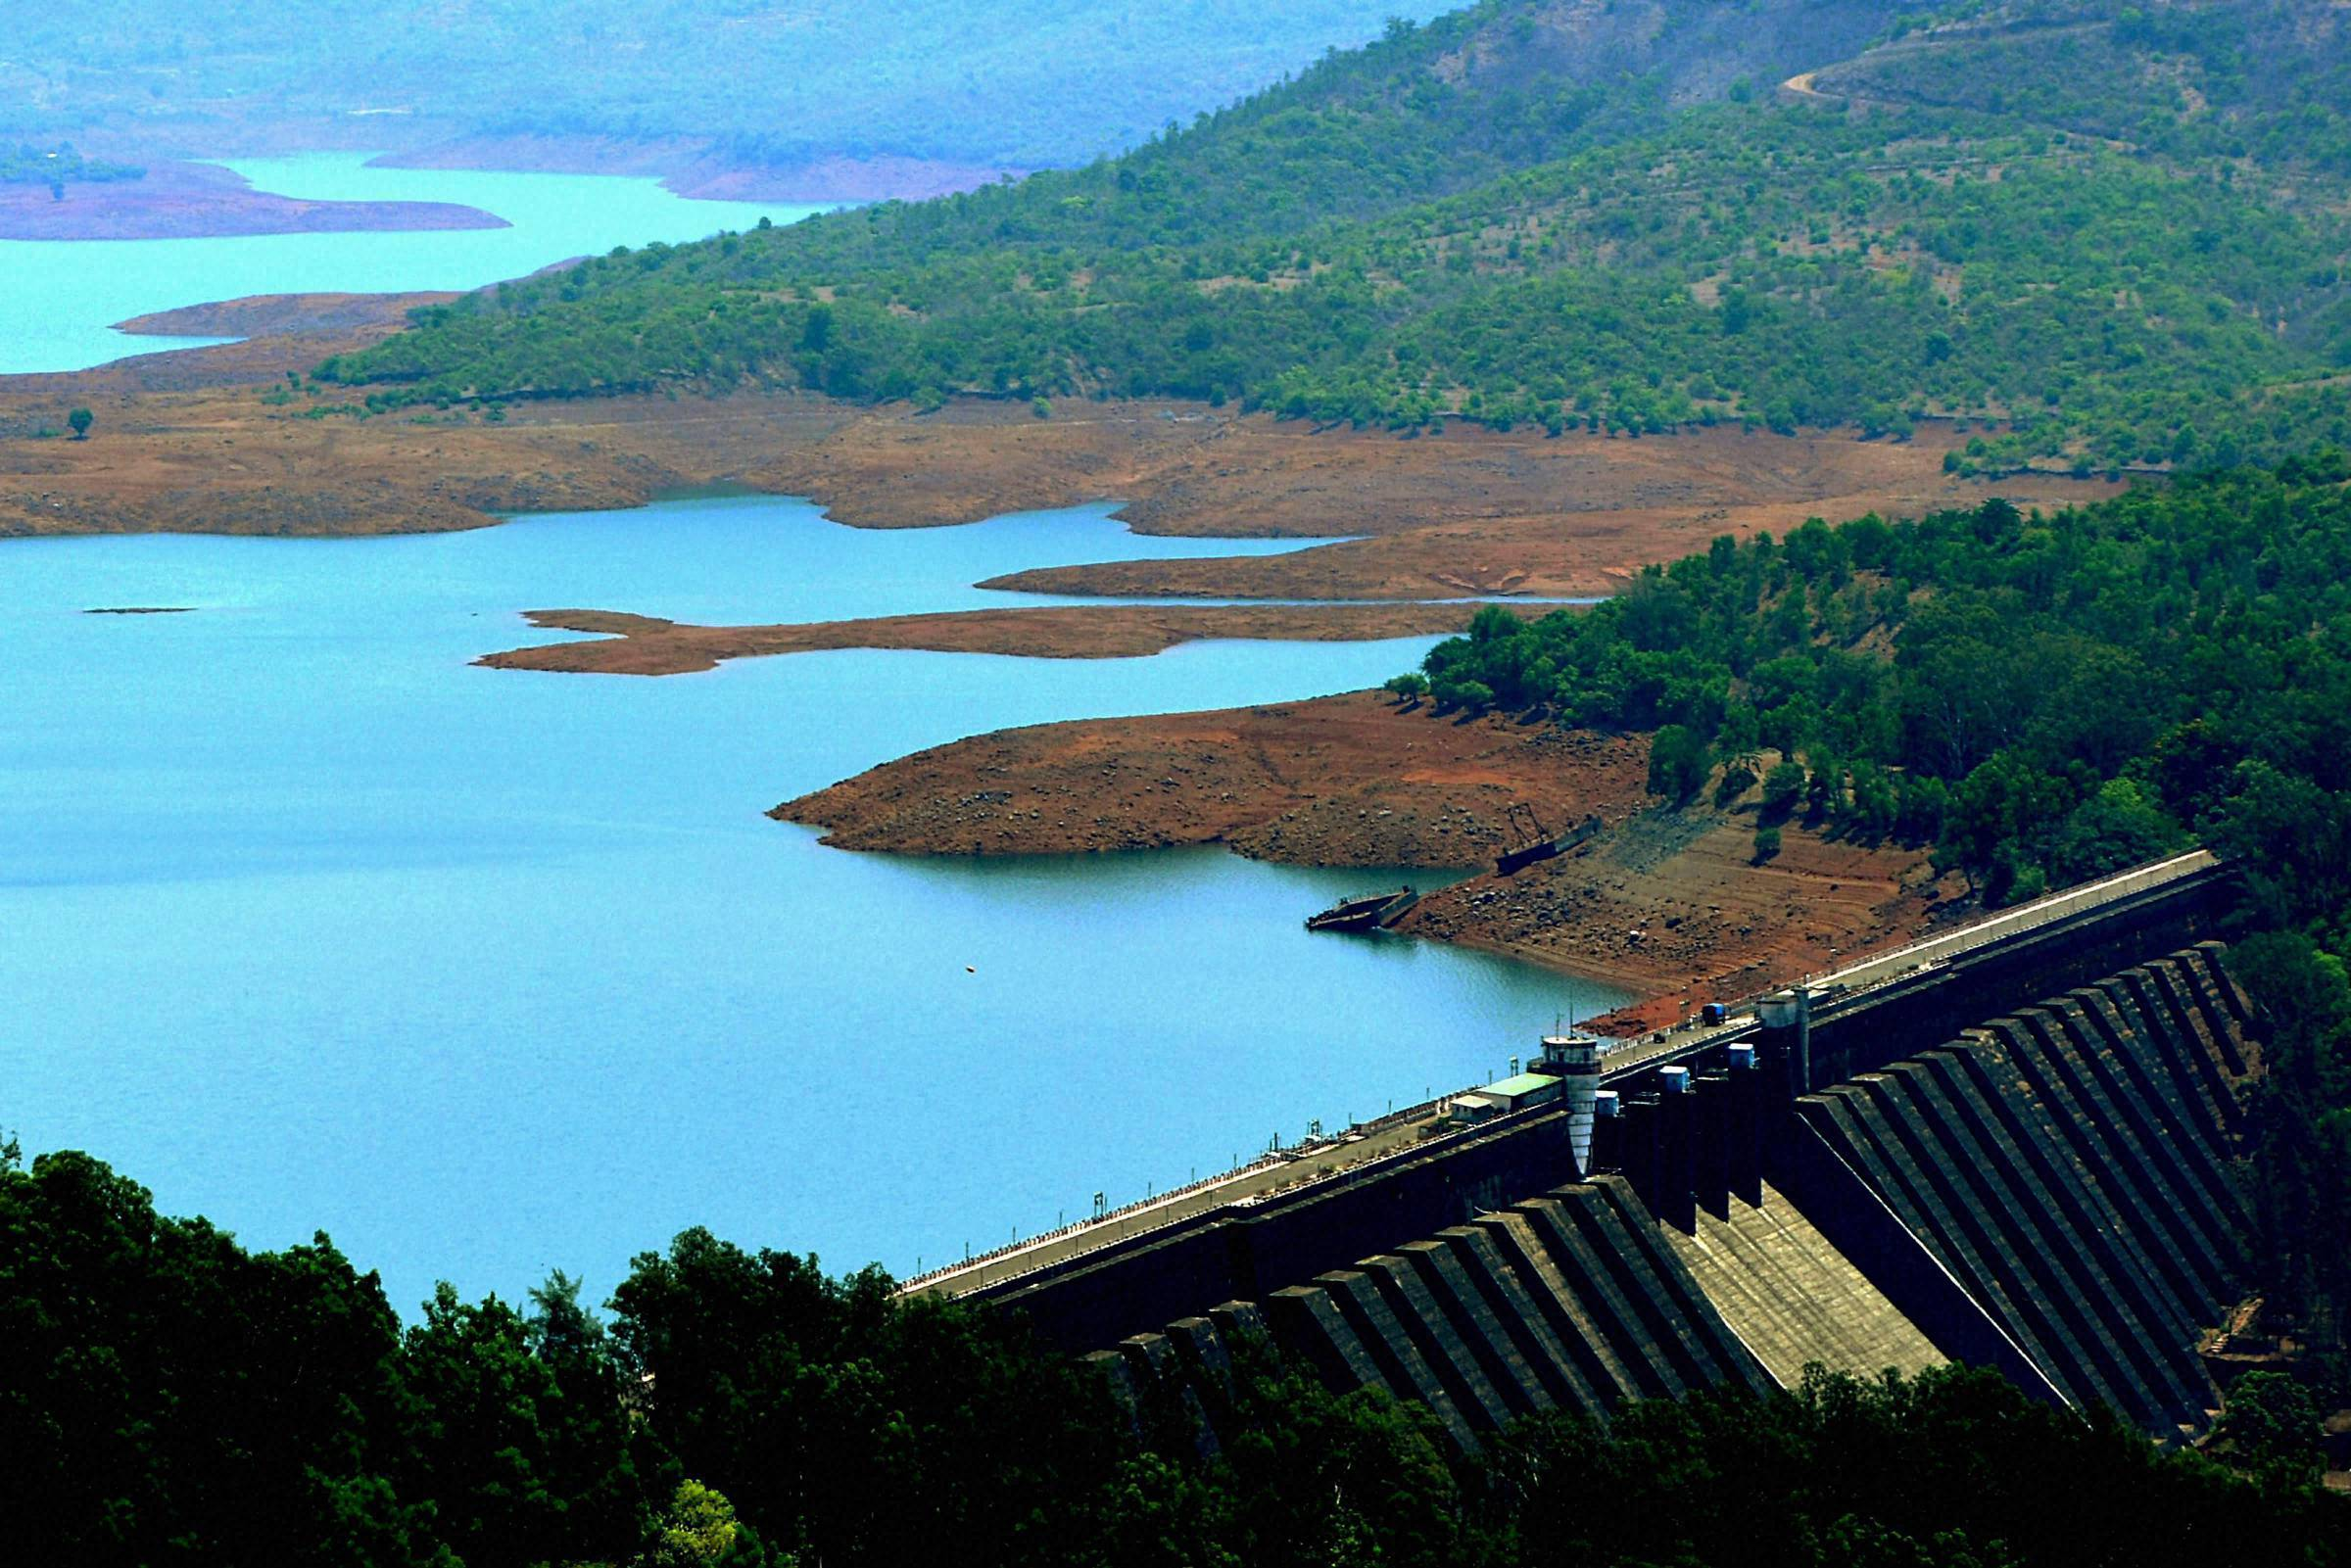 Water level dips in major reservoirs across India